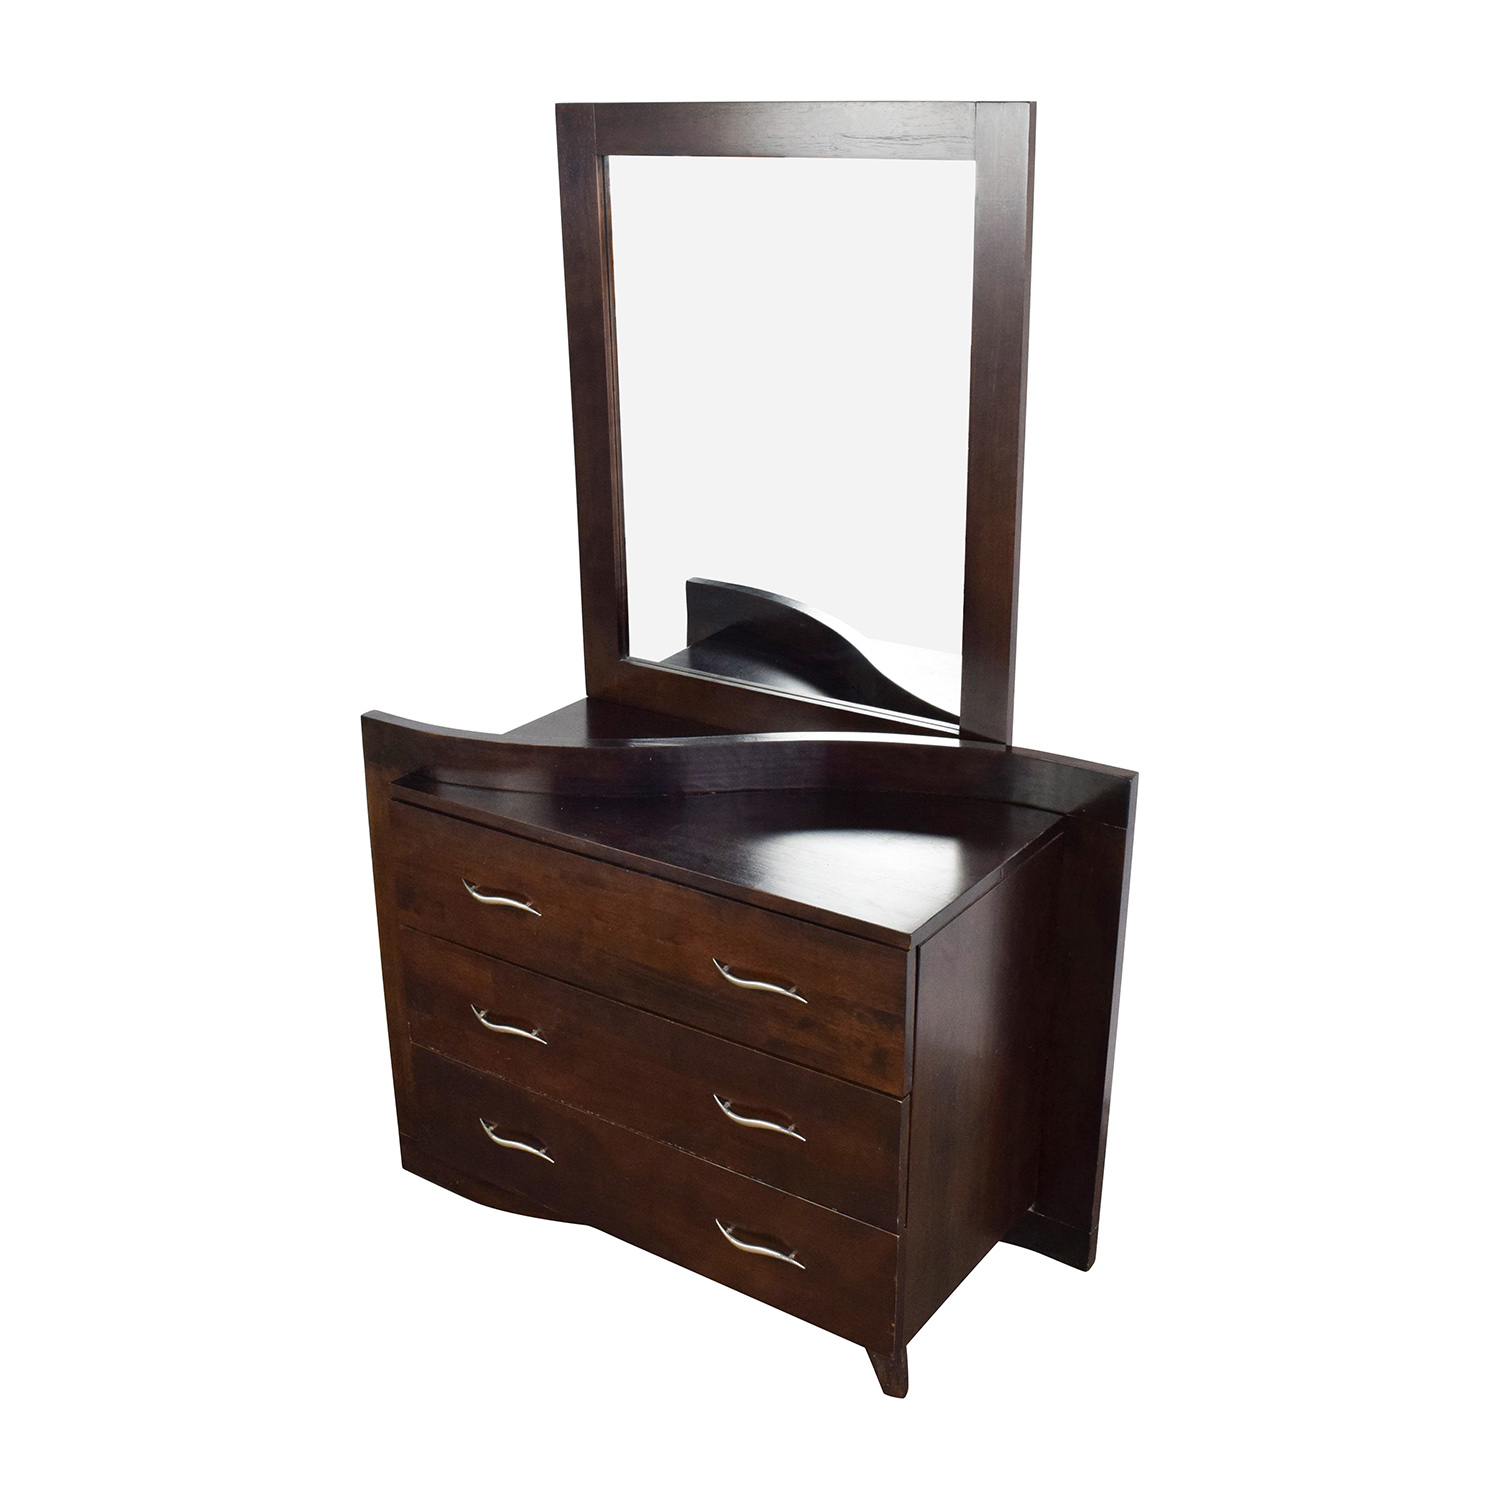 Dark Wood Dressers With Curved Drawers